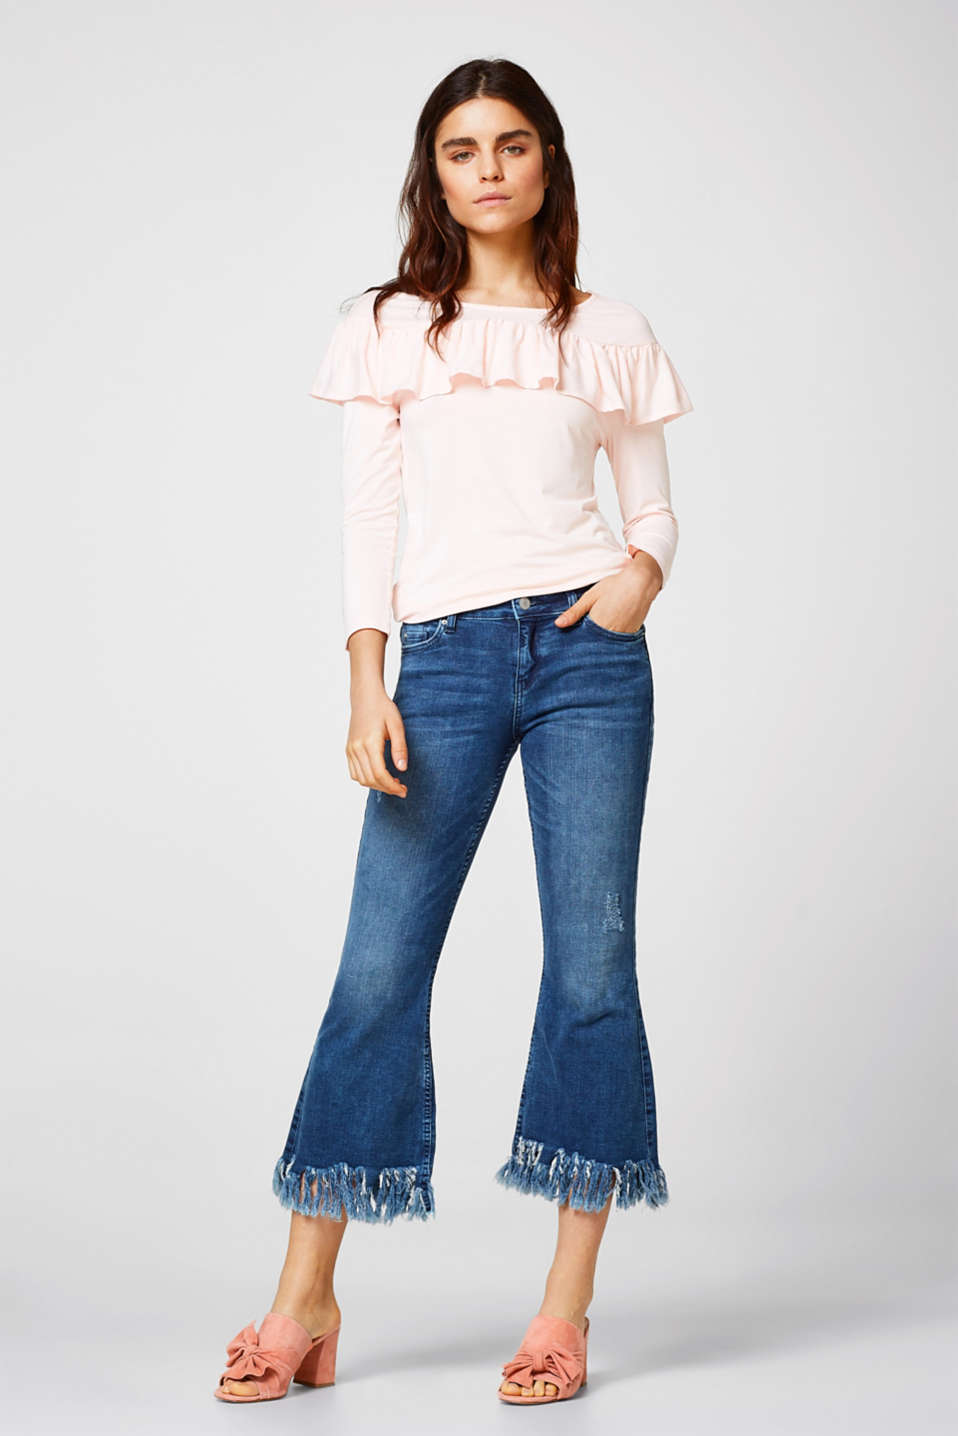 Stretch top with a pretty frill